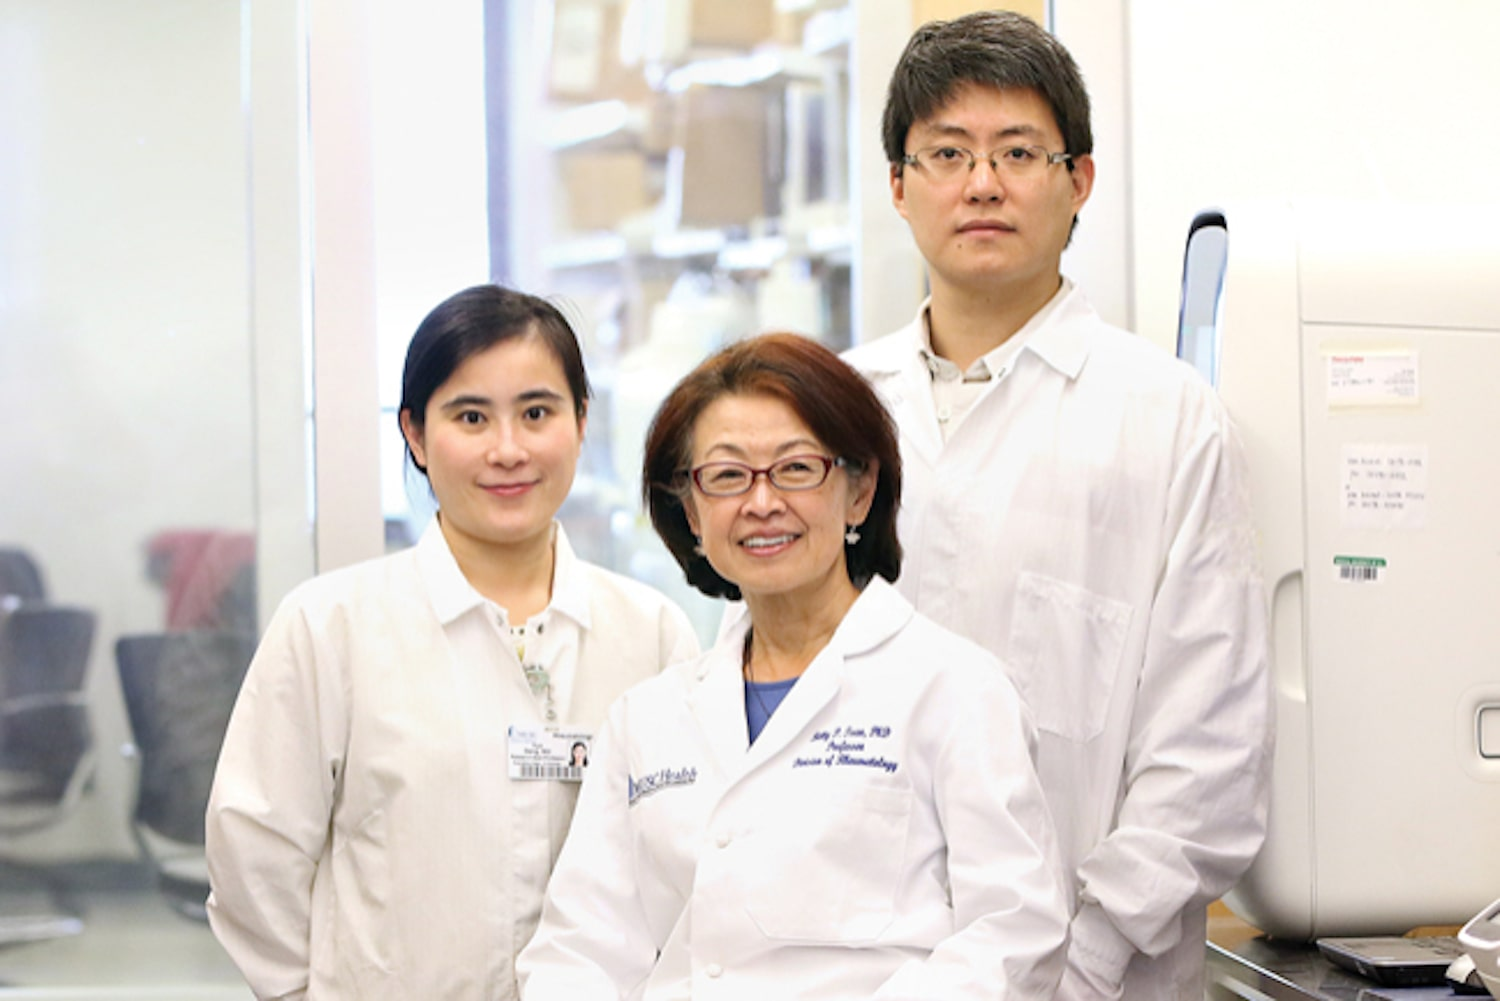 Betty Tsao, PhD | Jian Zhao, PhD | Genetic Risk Factor